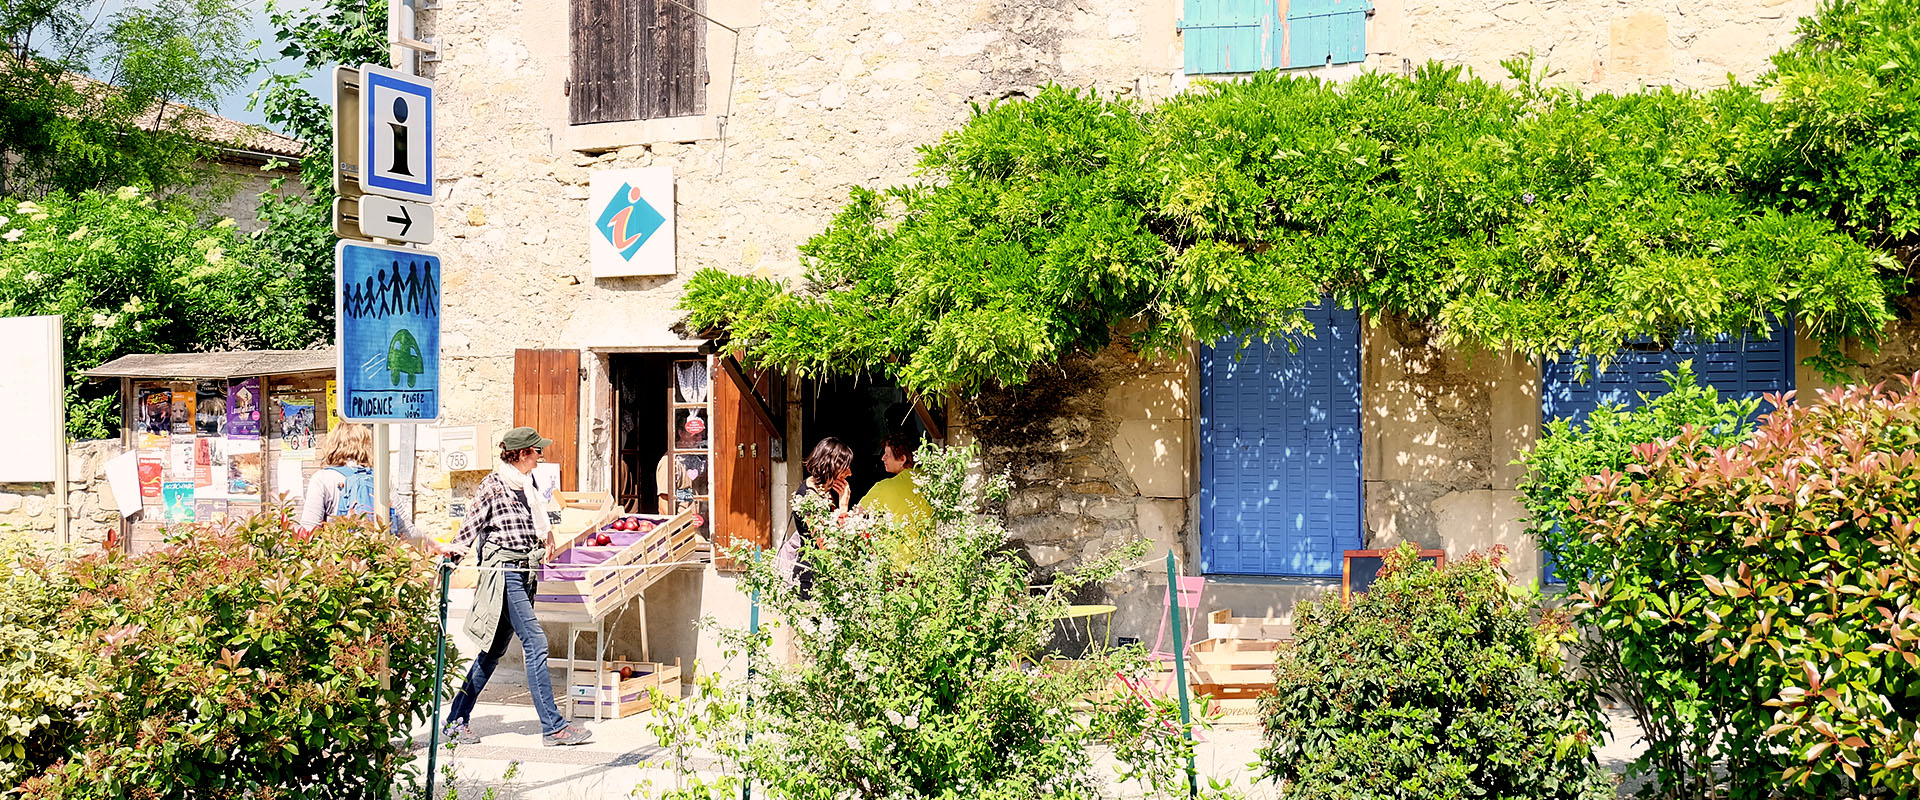 Slideshow 06 Village De Salavas En Ardeche